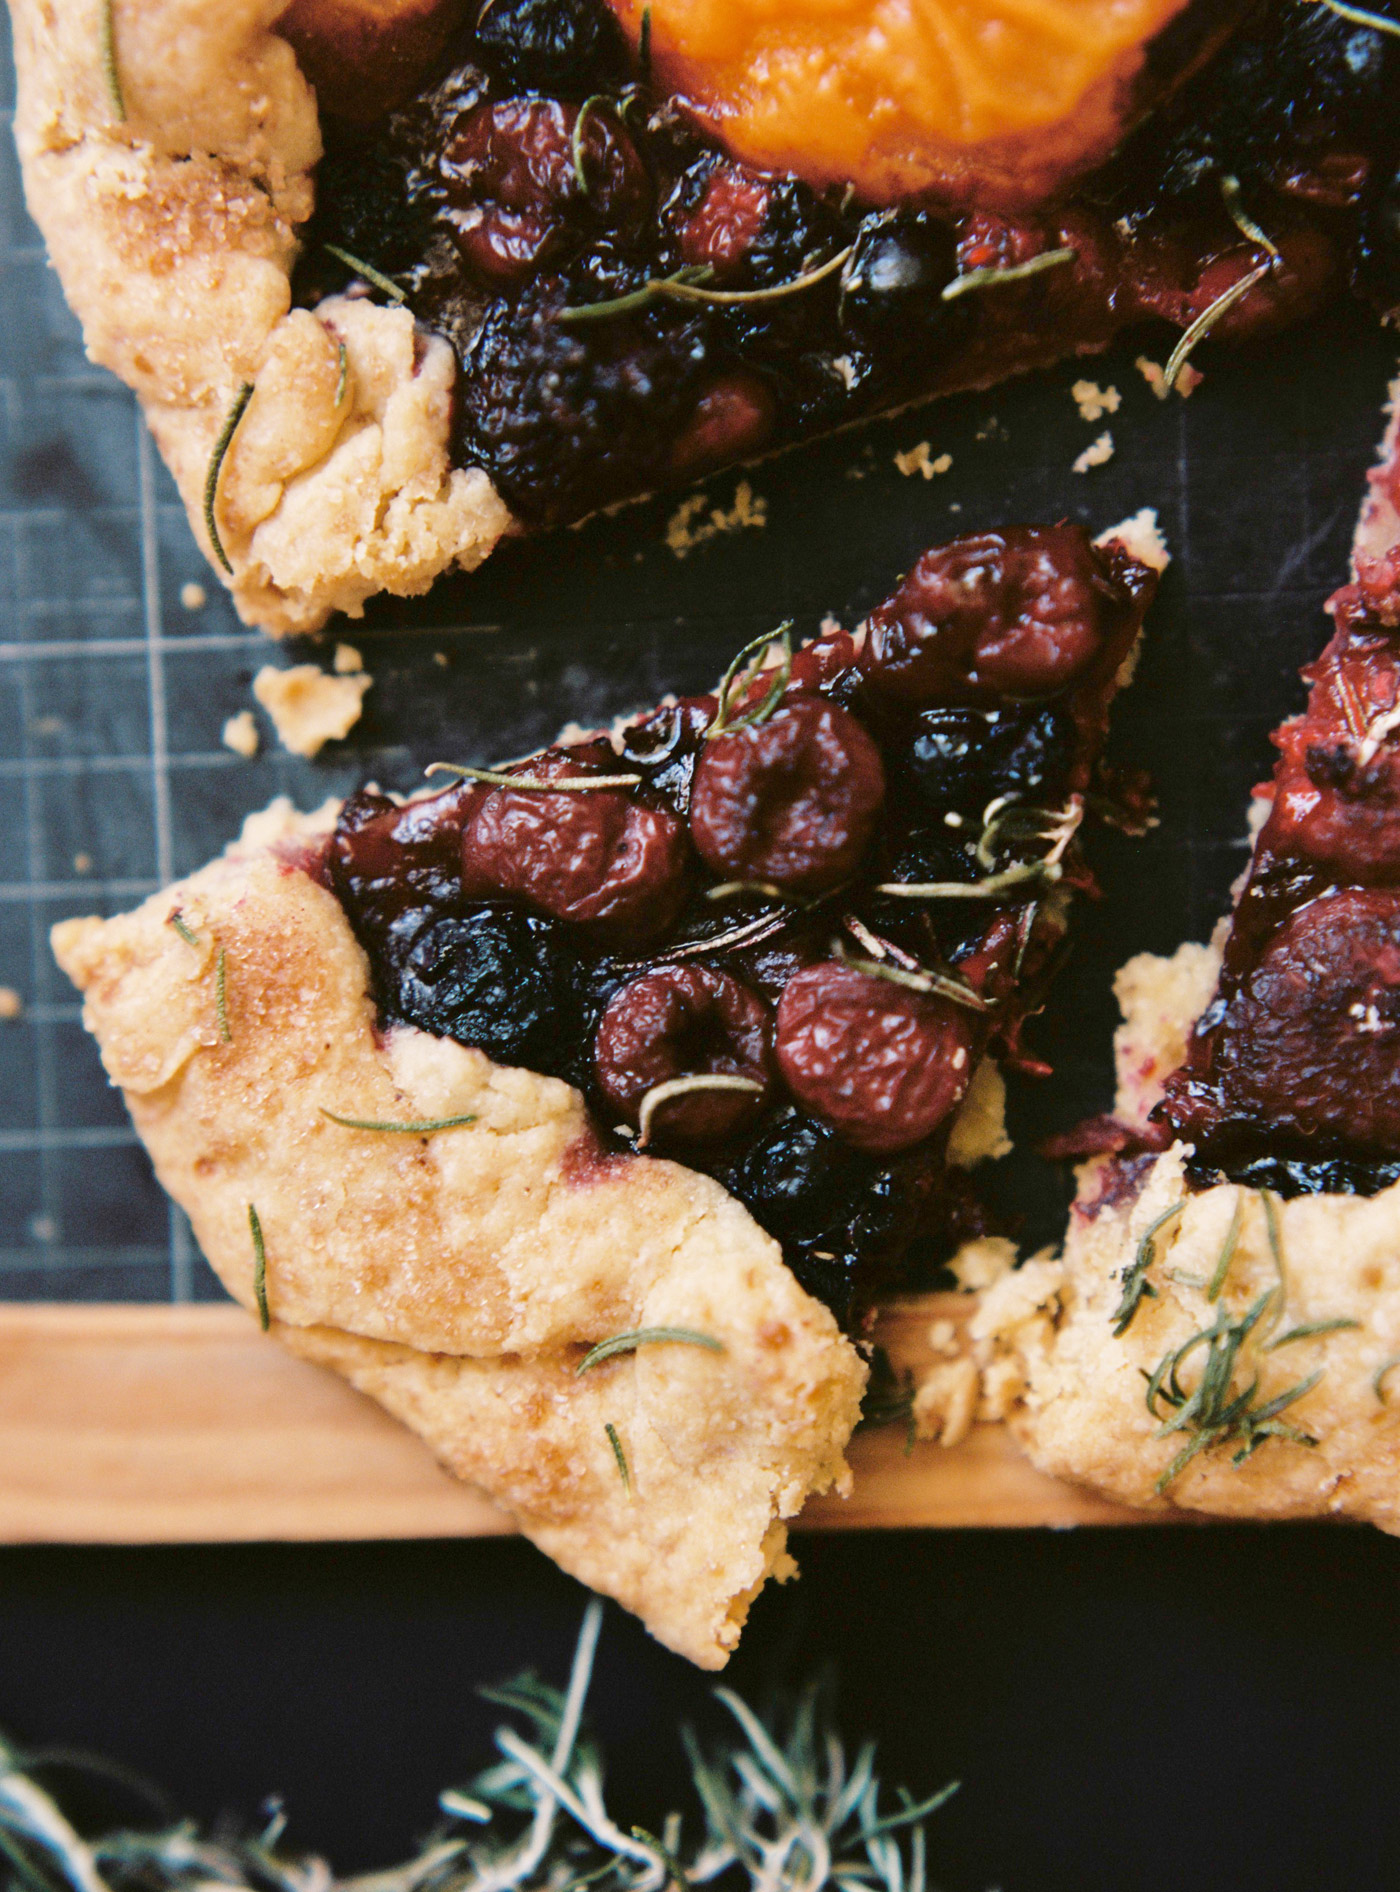 Blanccoco_Rustic_pie_styliste_photographe_culinaire-2